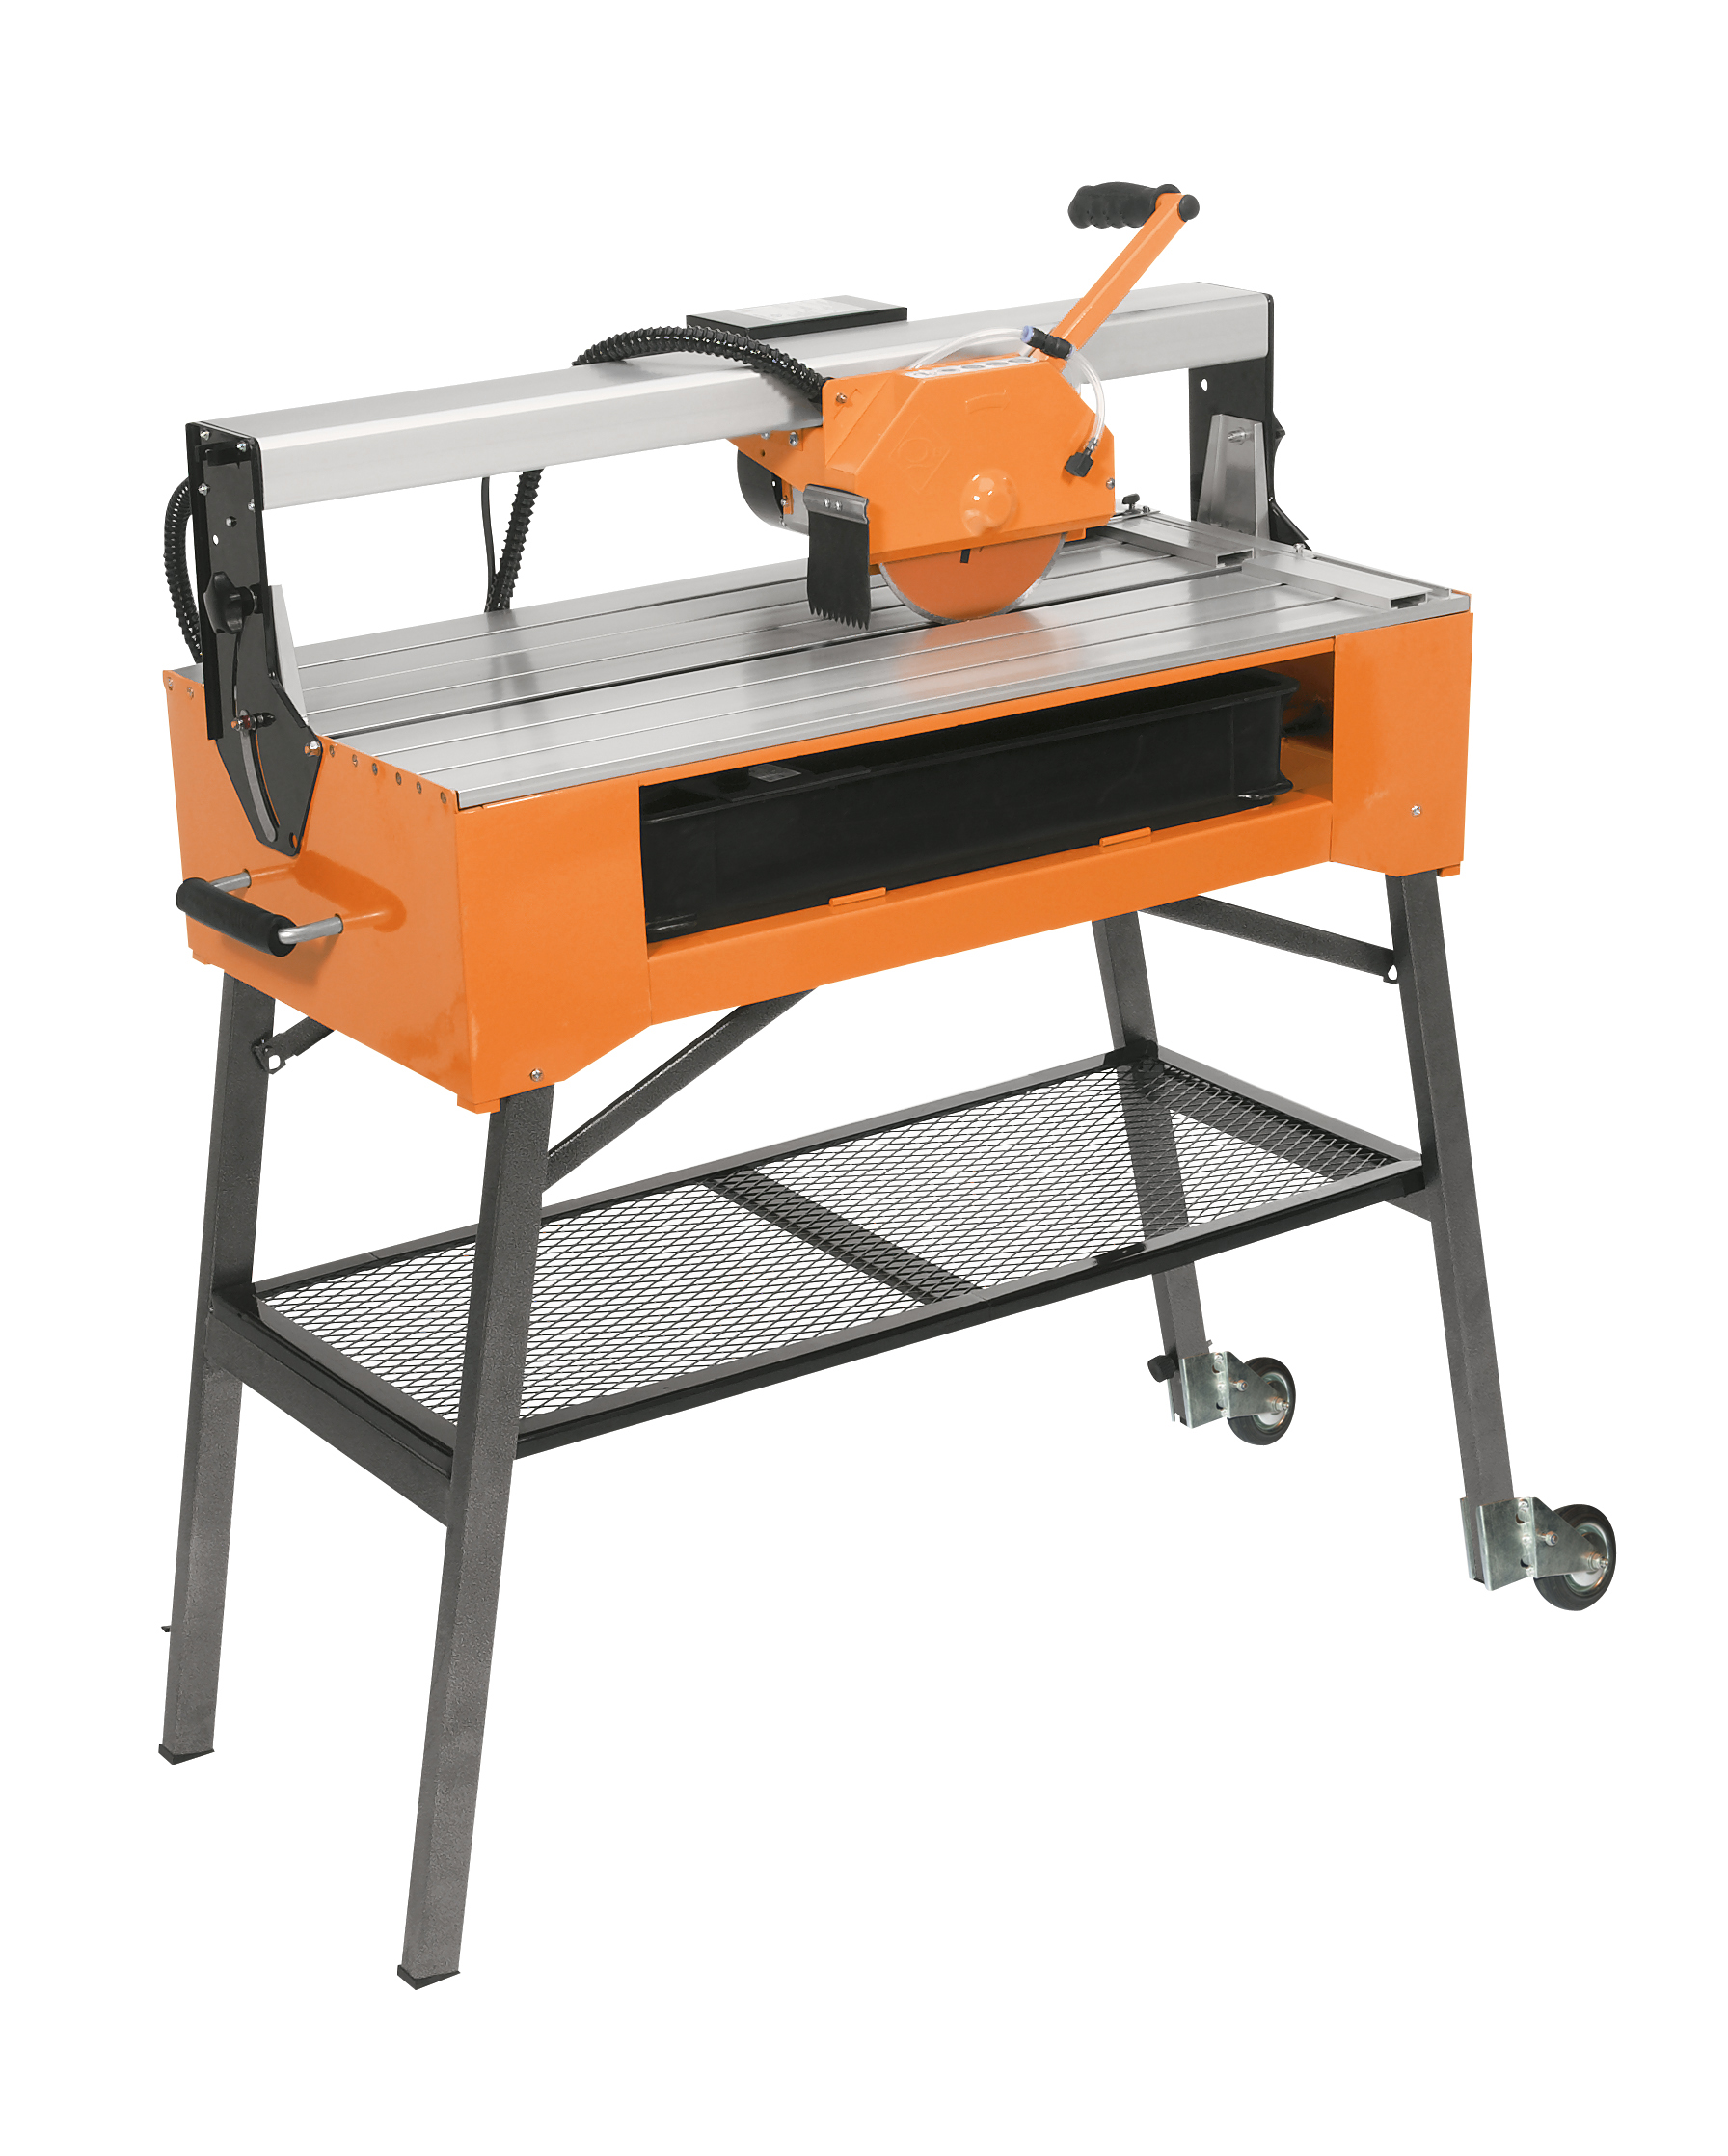 Versatile Power Pro 900 Bridge Saw